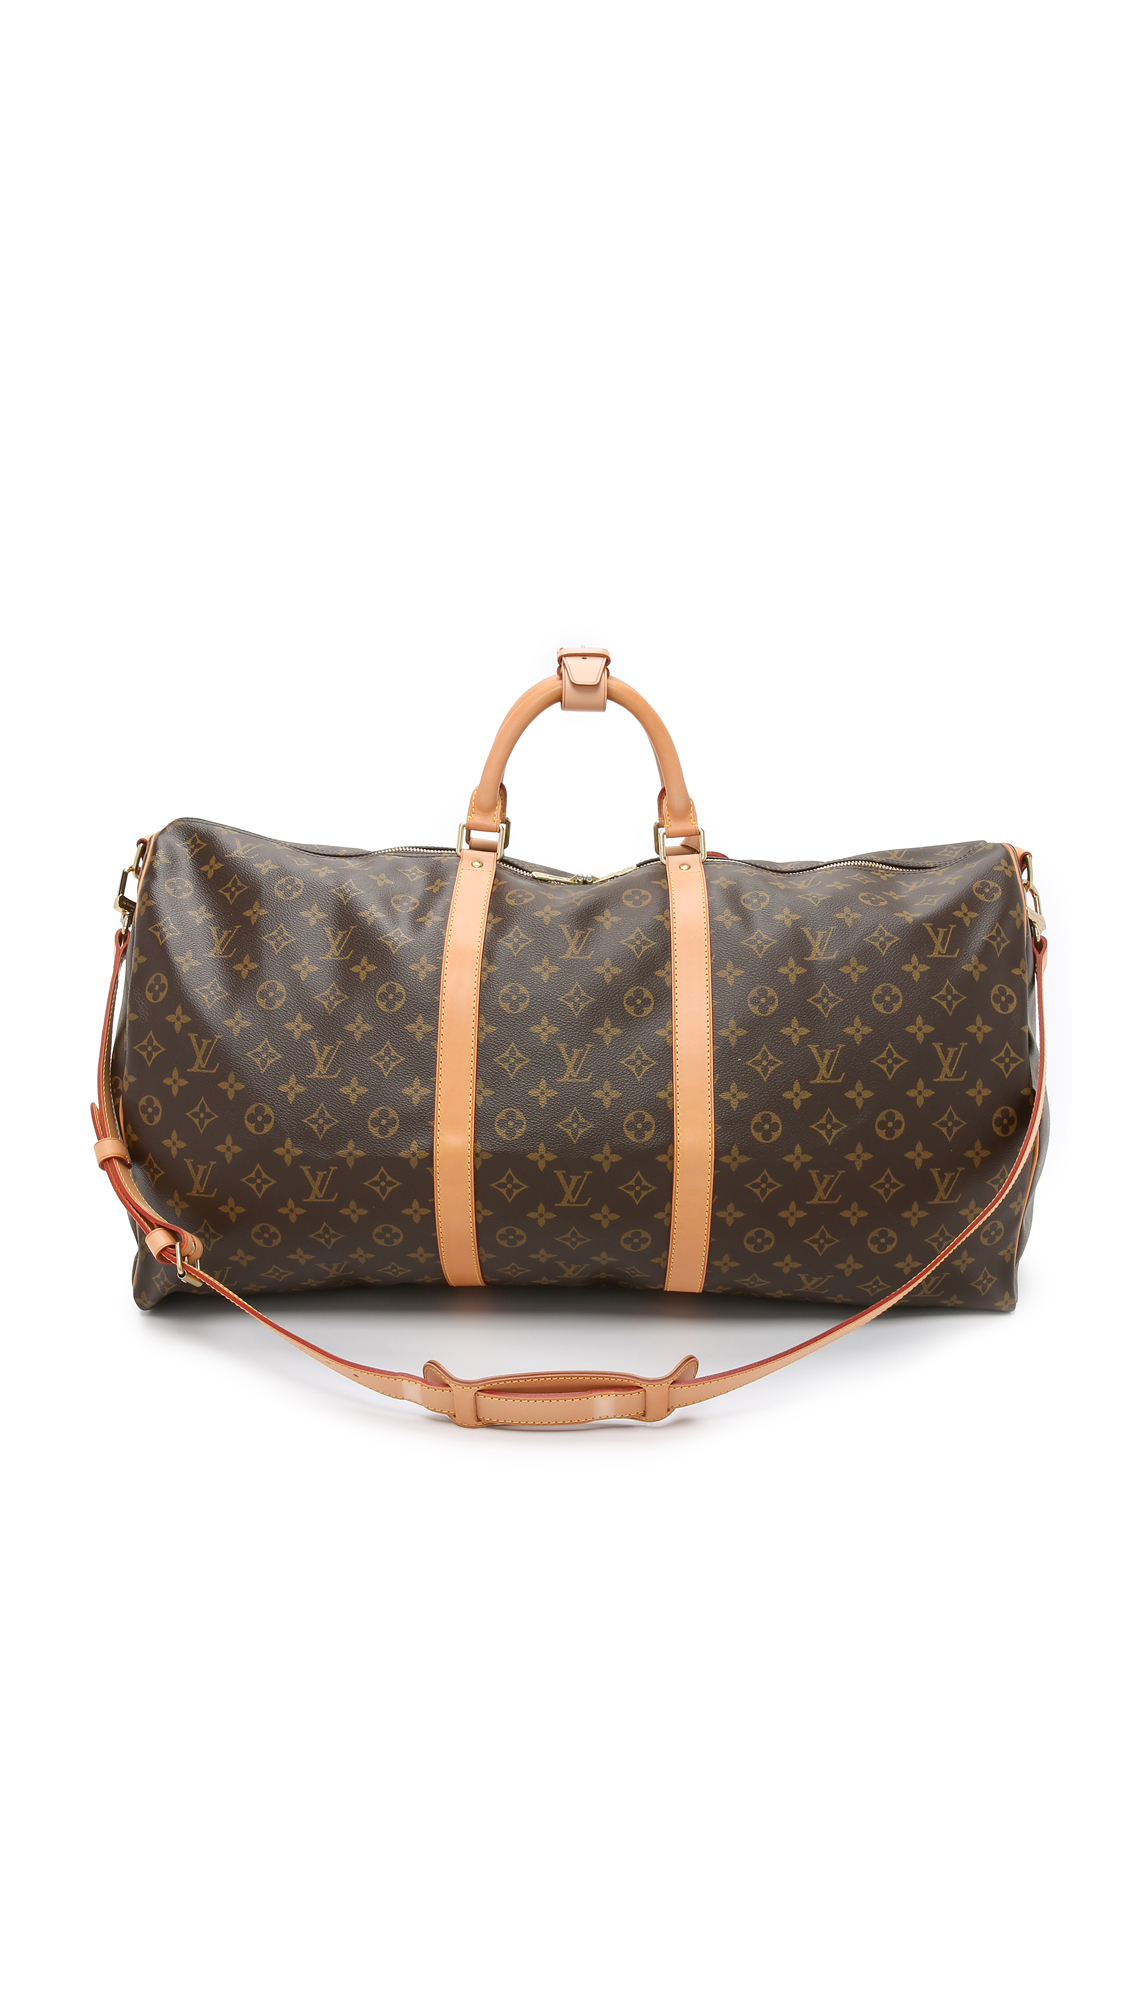 83d456b114c4 What Goes Around Comes Around 2004 Louis Vuitton Keepall 60 Duffel  (Previously Owned) In